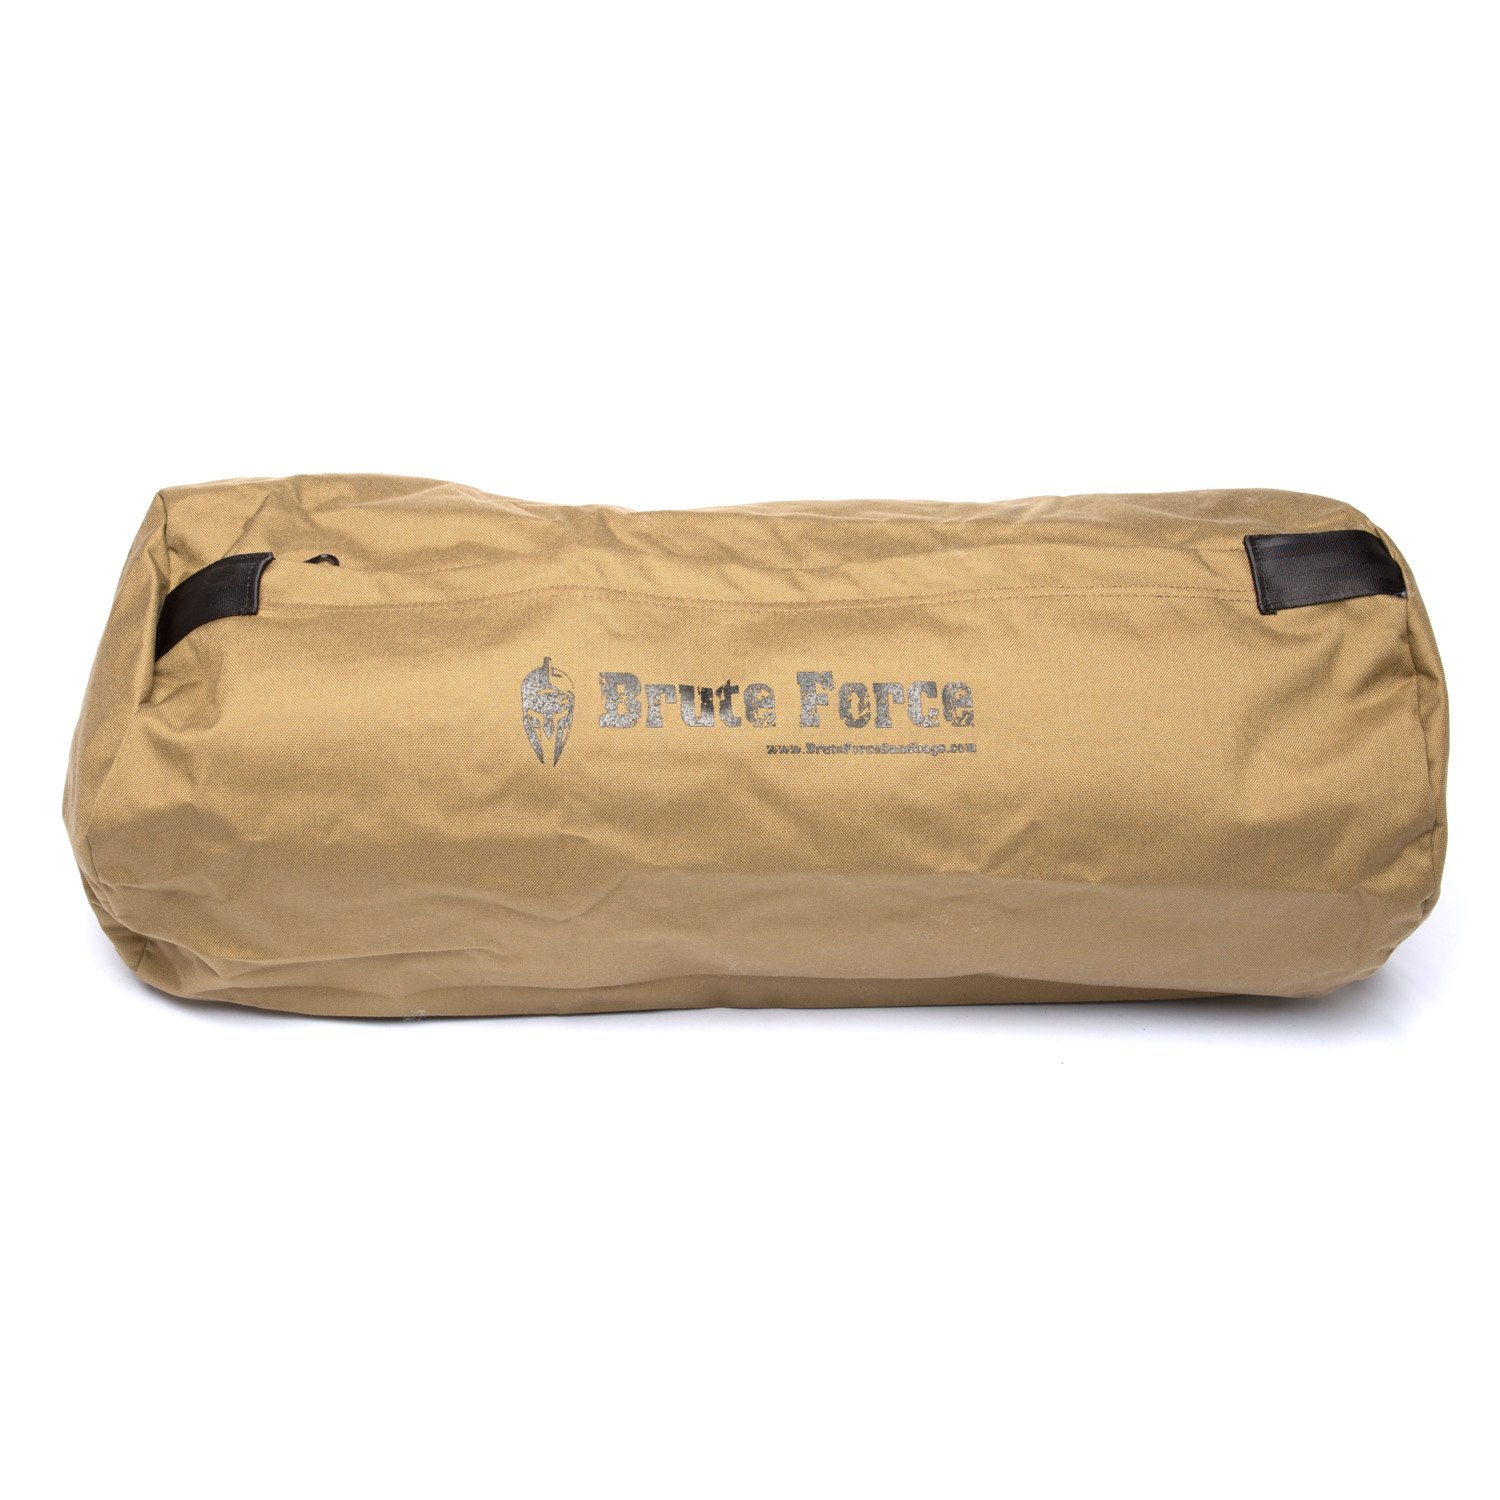 Brute Force Sandbags - Barebone 125 - Strongman - Heavy Duty no Handle sandbag bearhug sandbag Perfect for Garage Fit Ness Home Gym Must Have